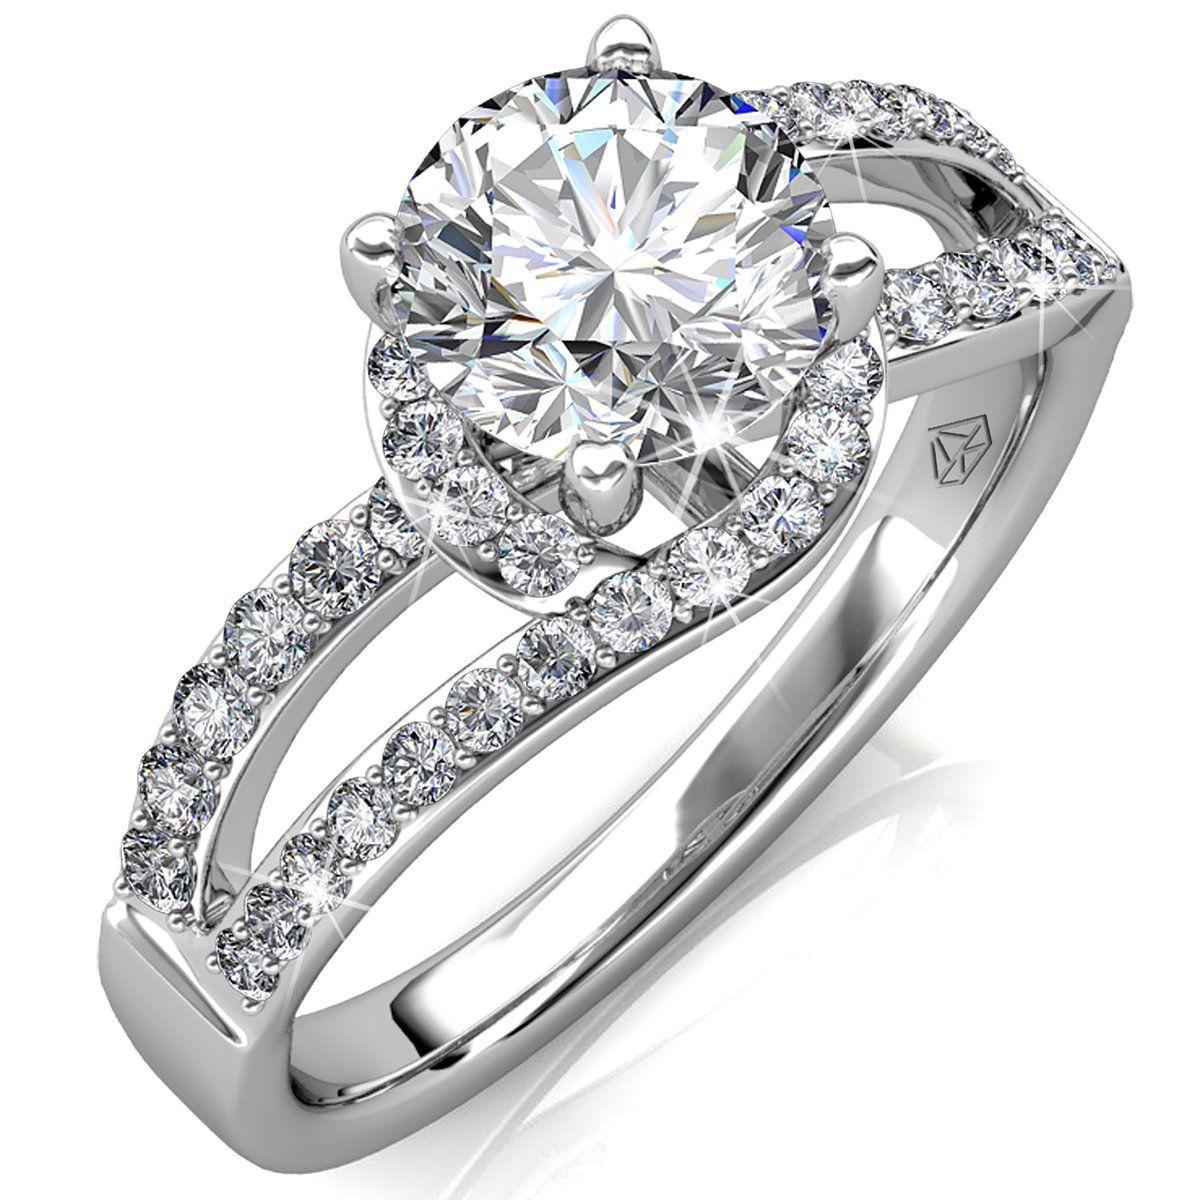 5558721ed78be Amazon.com: FAPPAC Split Shank Ring Band Enriched with Swarovski ...